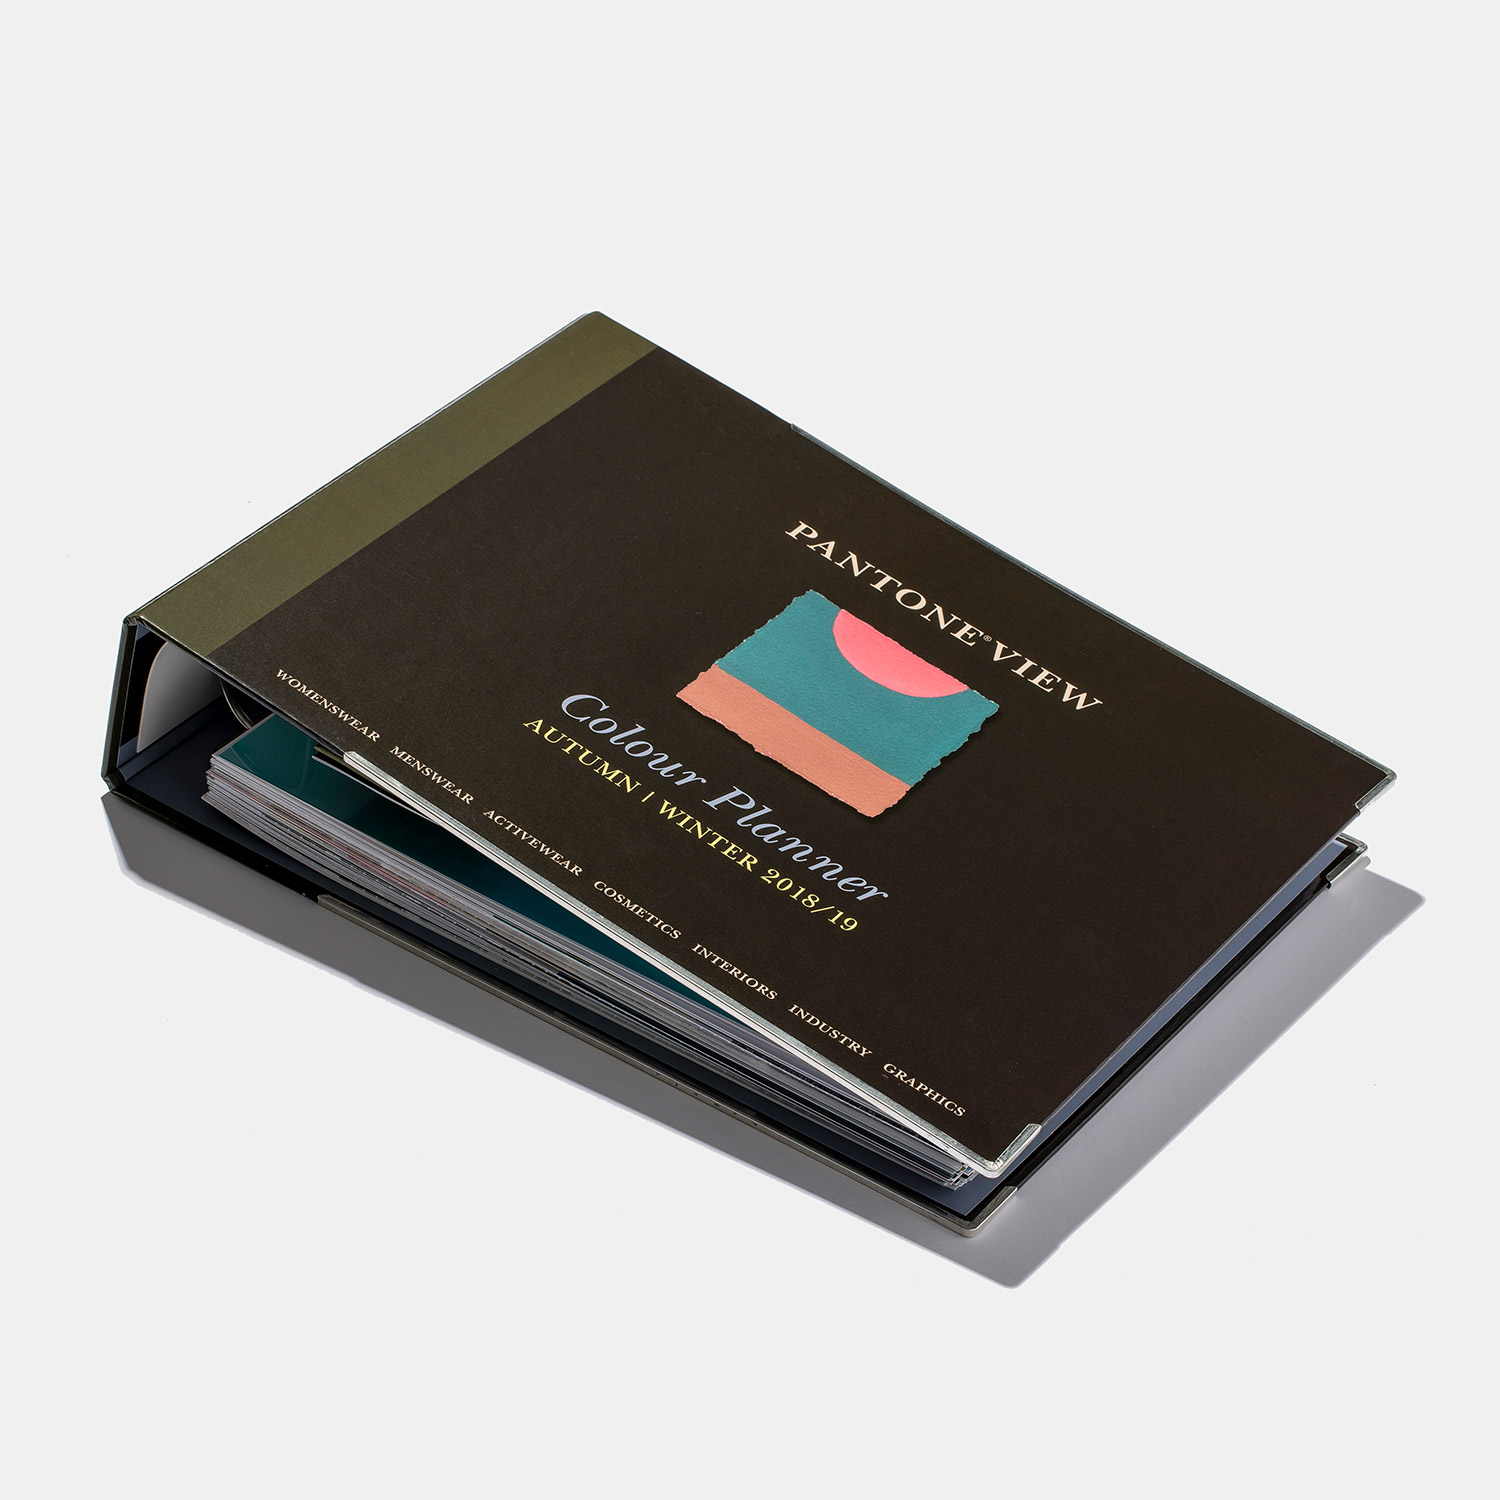 VCP-F18 - PANTONEVIEW Colour Planner - outono/inverno 2018/2019